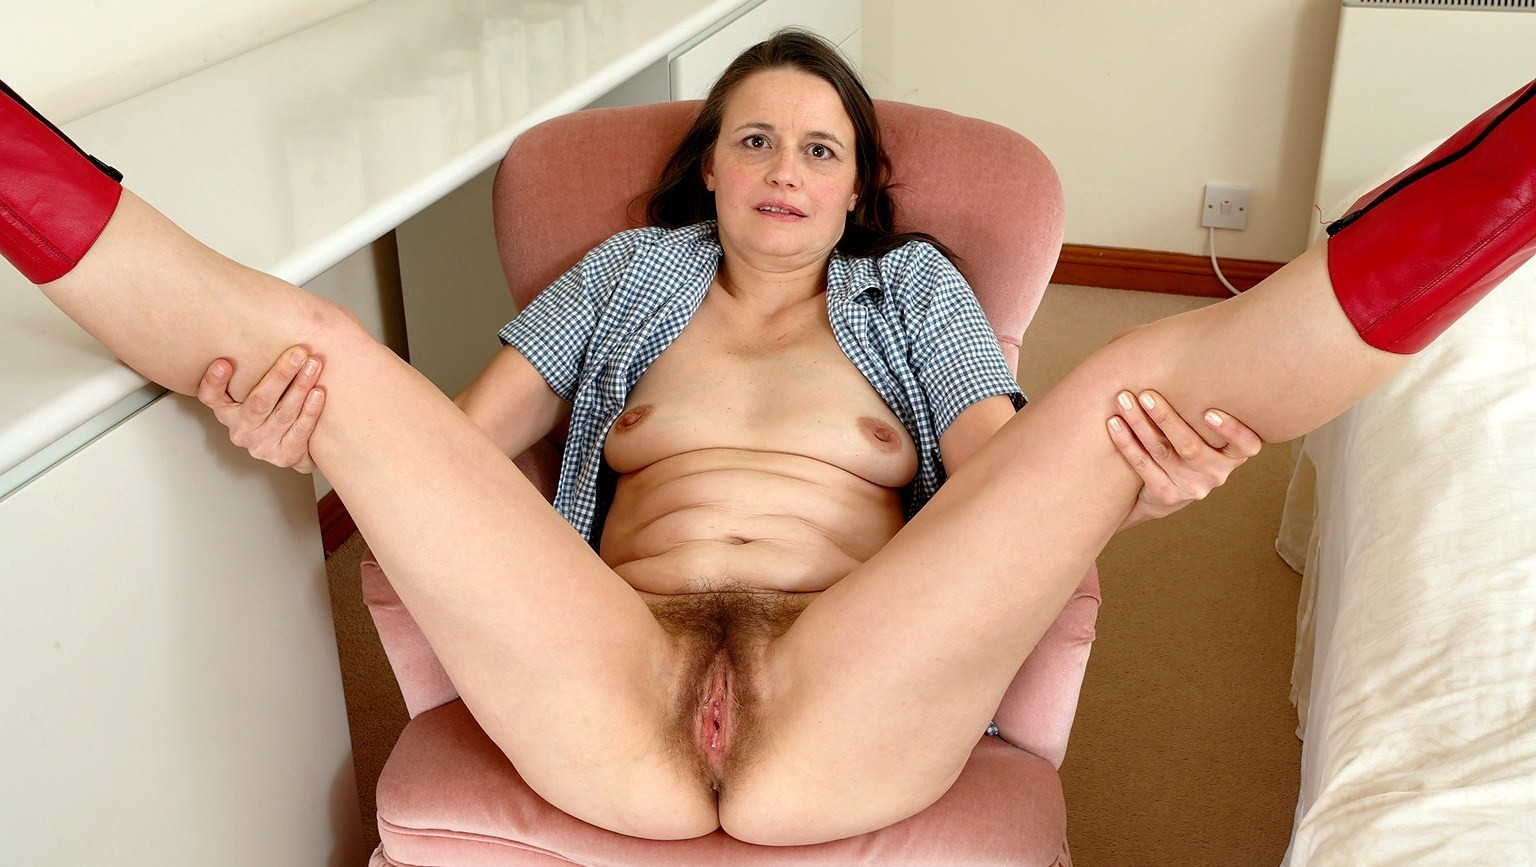 alicia-free-atk-mature-hairy-video-nude-oil-woman